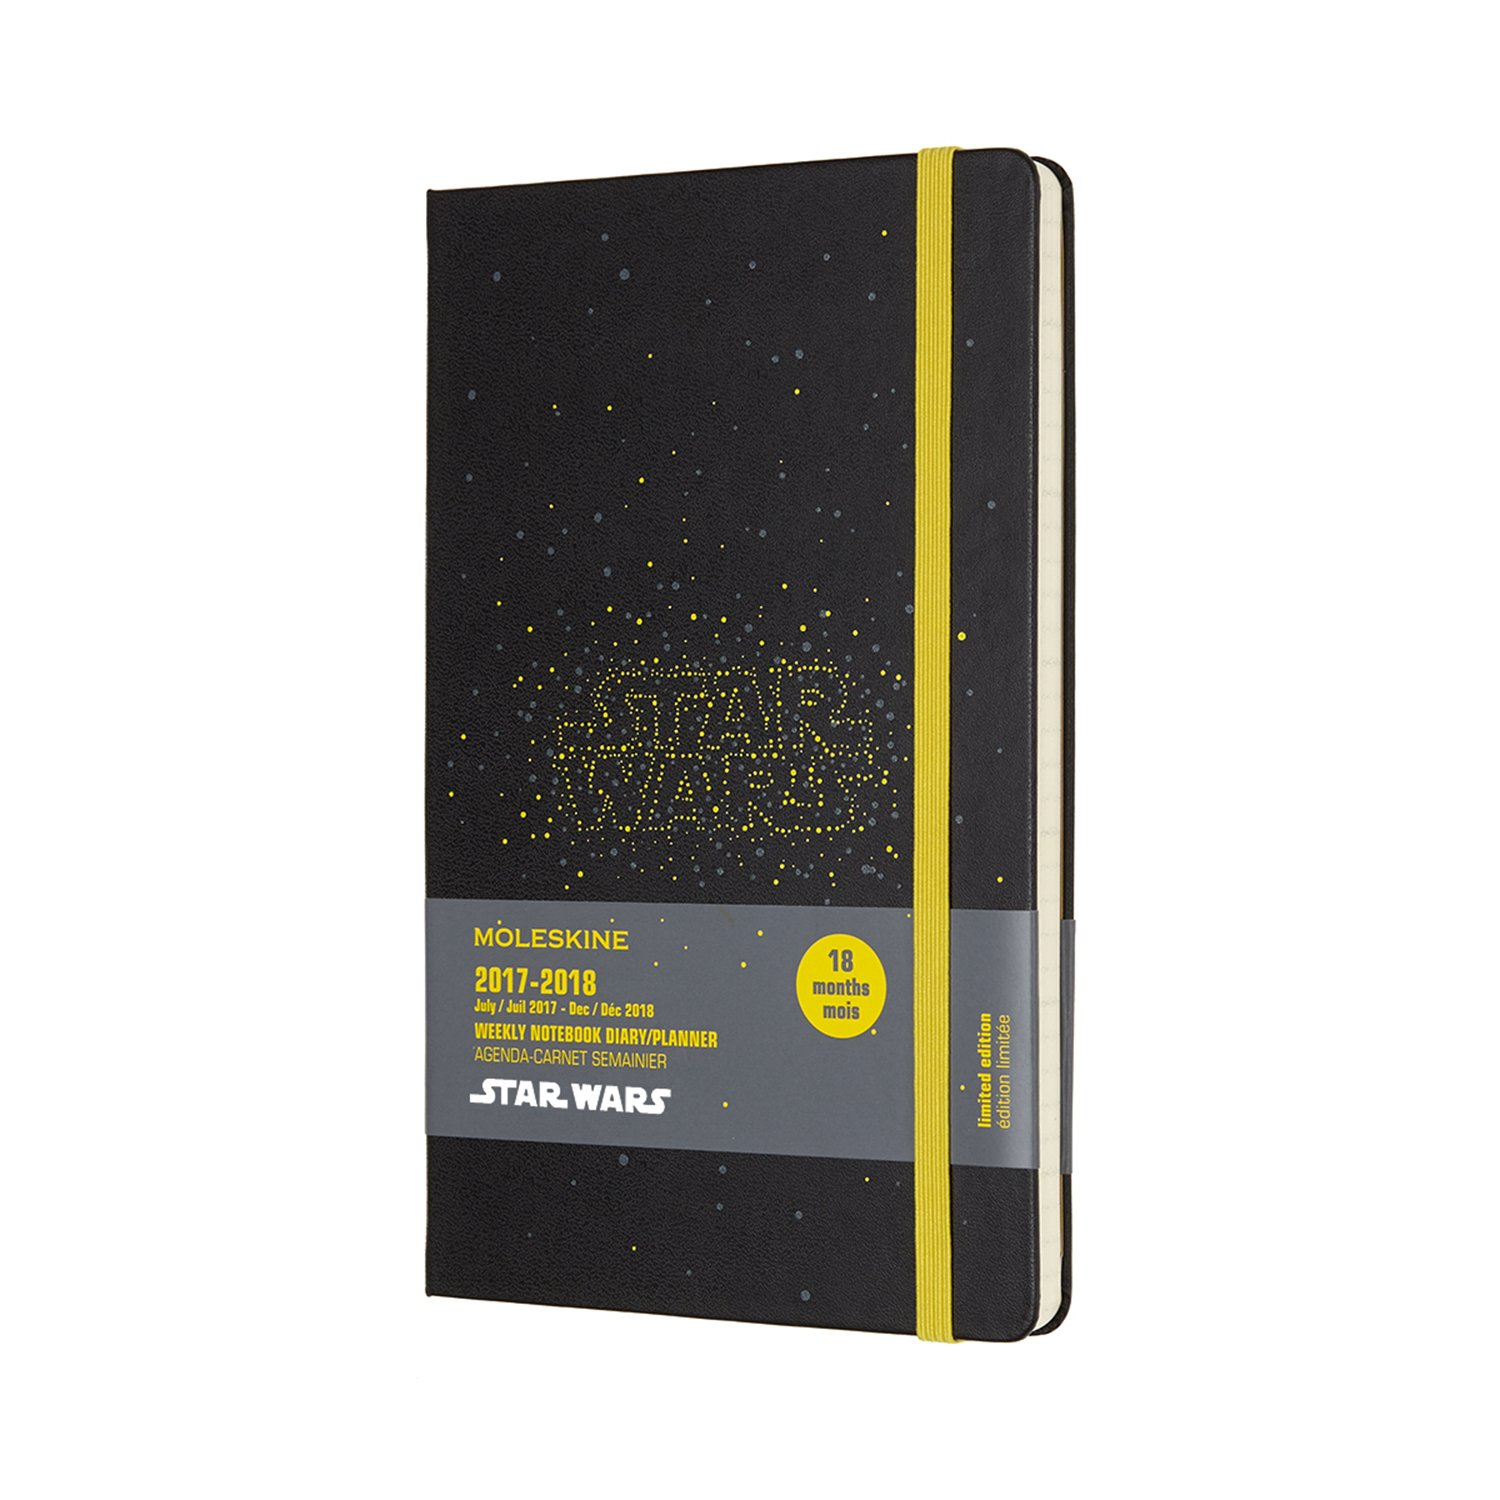 Moleskine Limited Edition Star Wars, 18 Month Weekly Planner, Large, Logo (5 x 8.25)